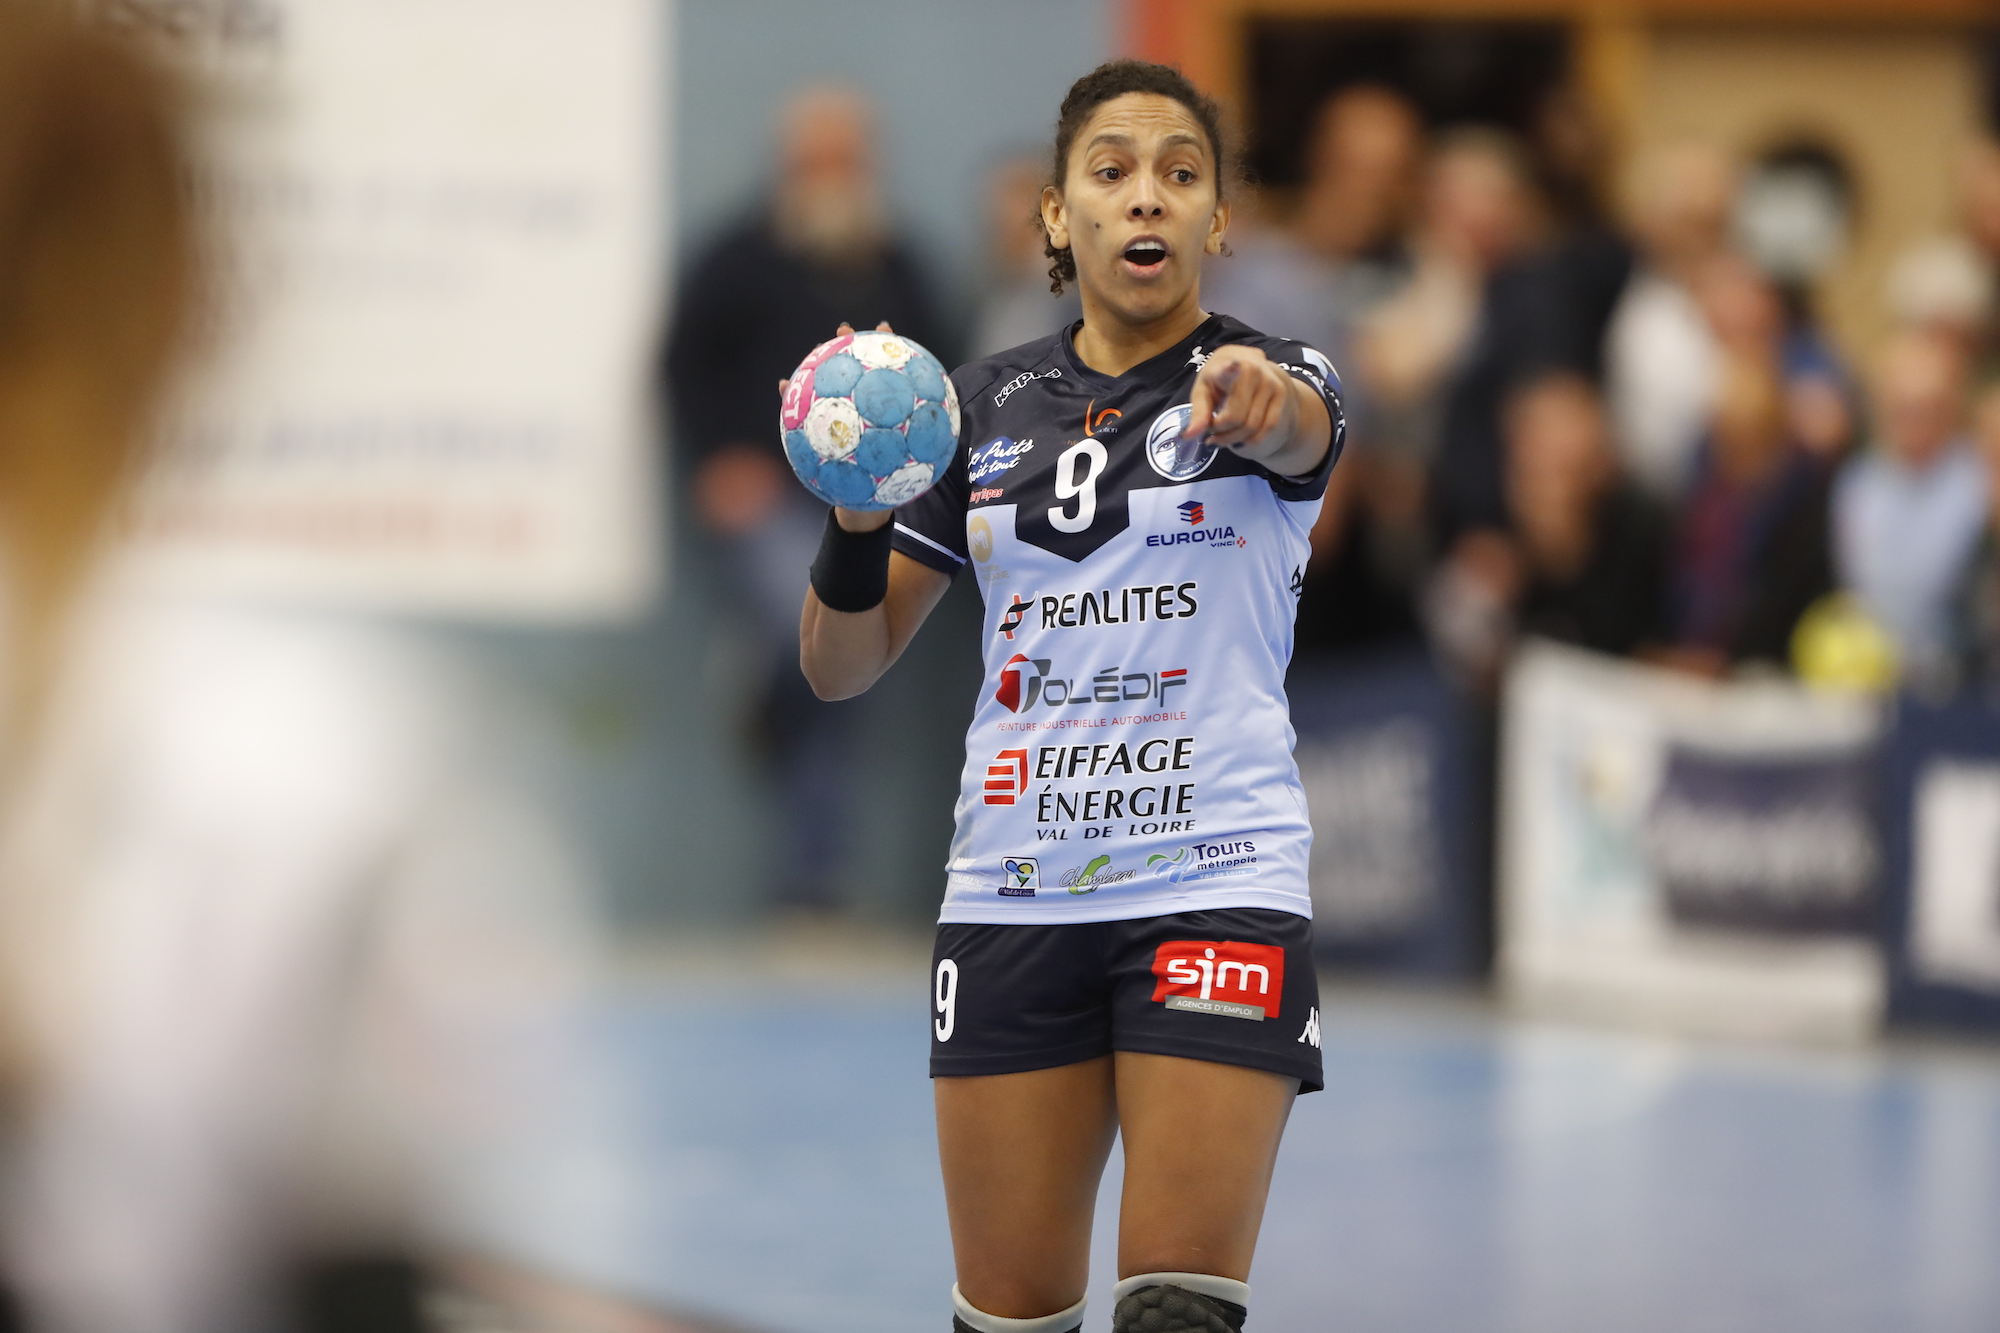 HANDBALL : Chambray Touraine Handball Vs JDA Dijon Hand - Ligue Butagaz Energie - J18 - 26/02/2020